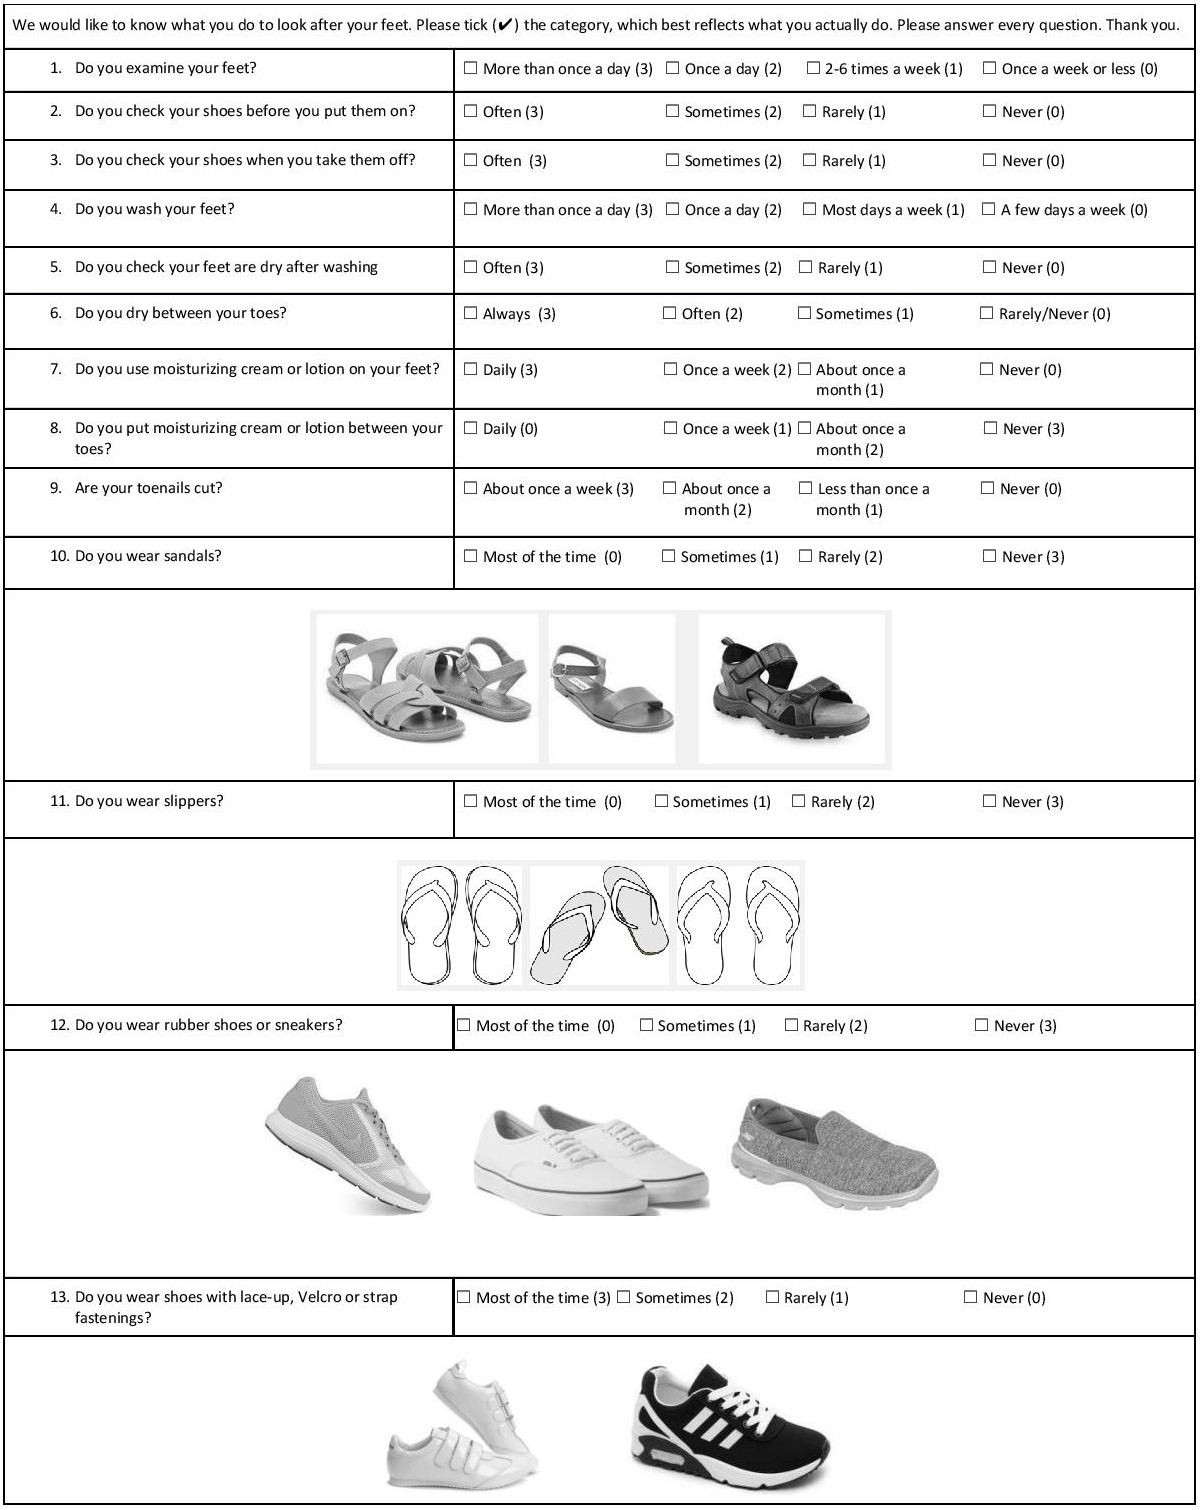 View Of Knowledge And Practice Of Diabetic Foot Care In Patients